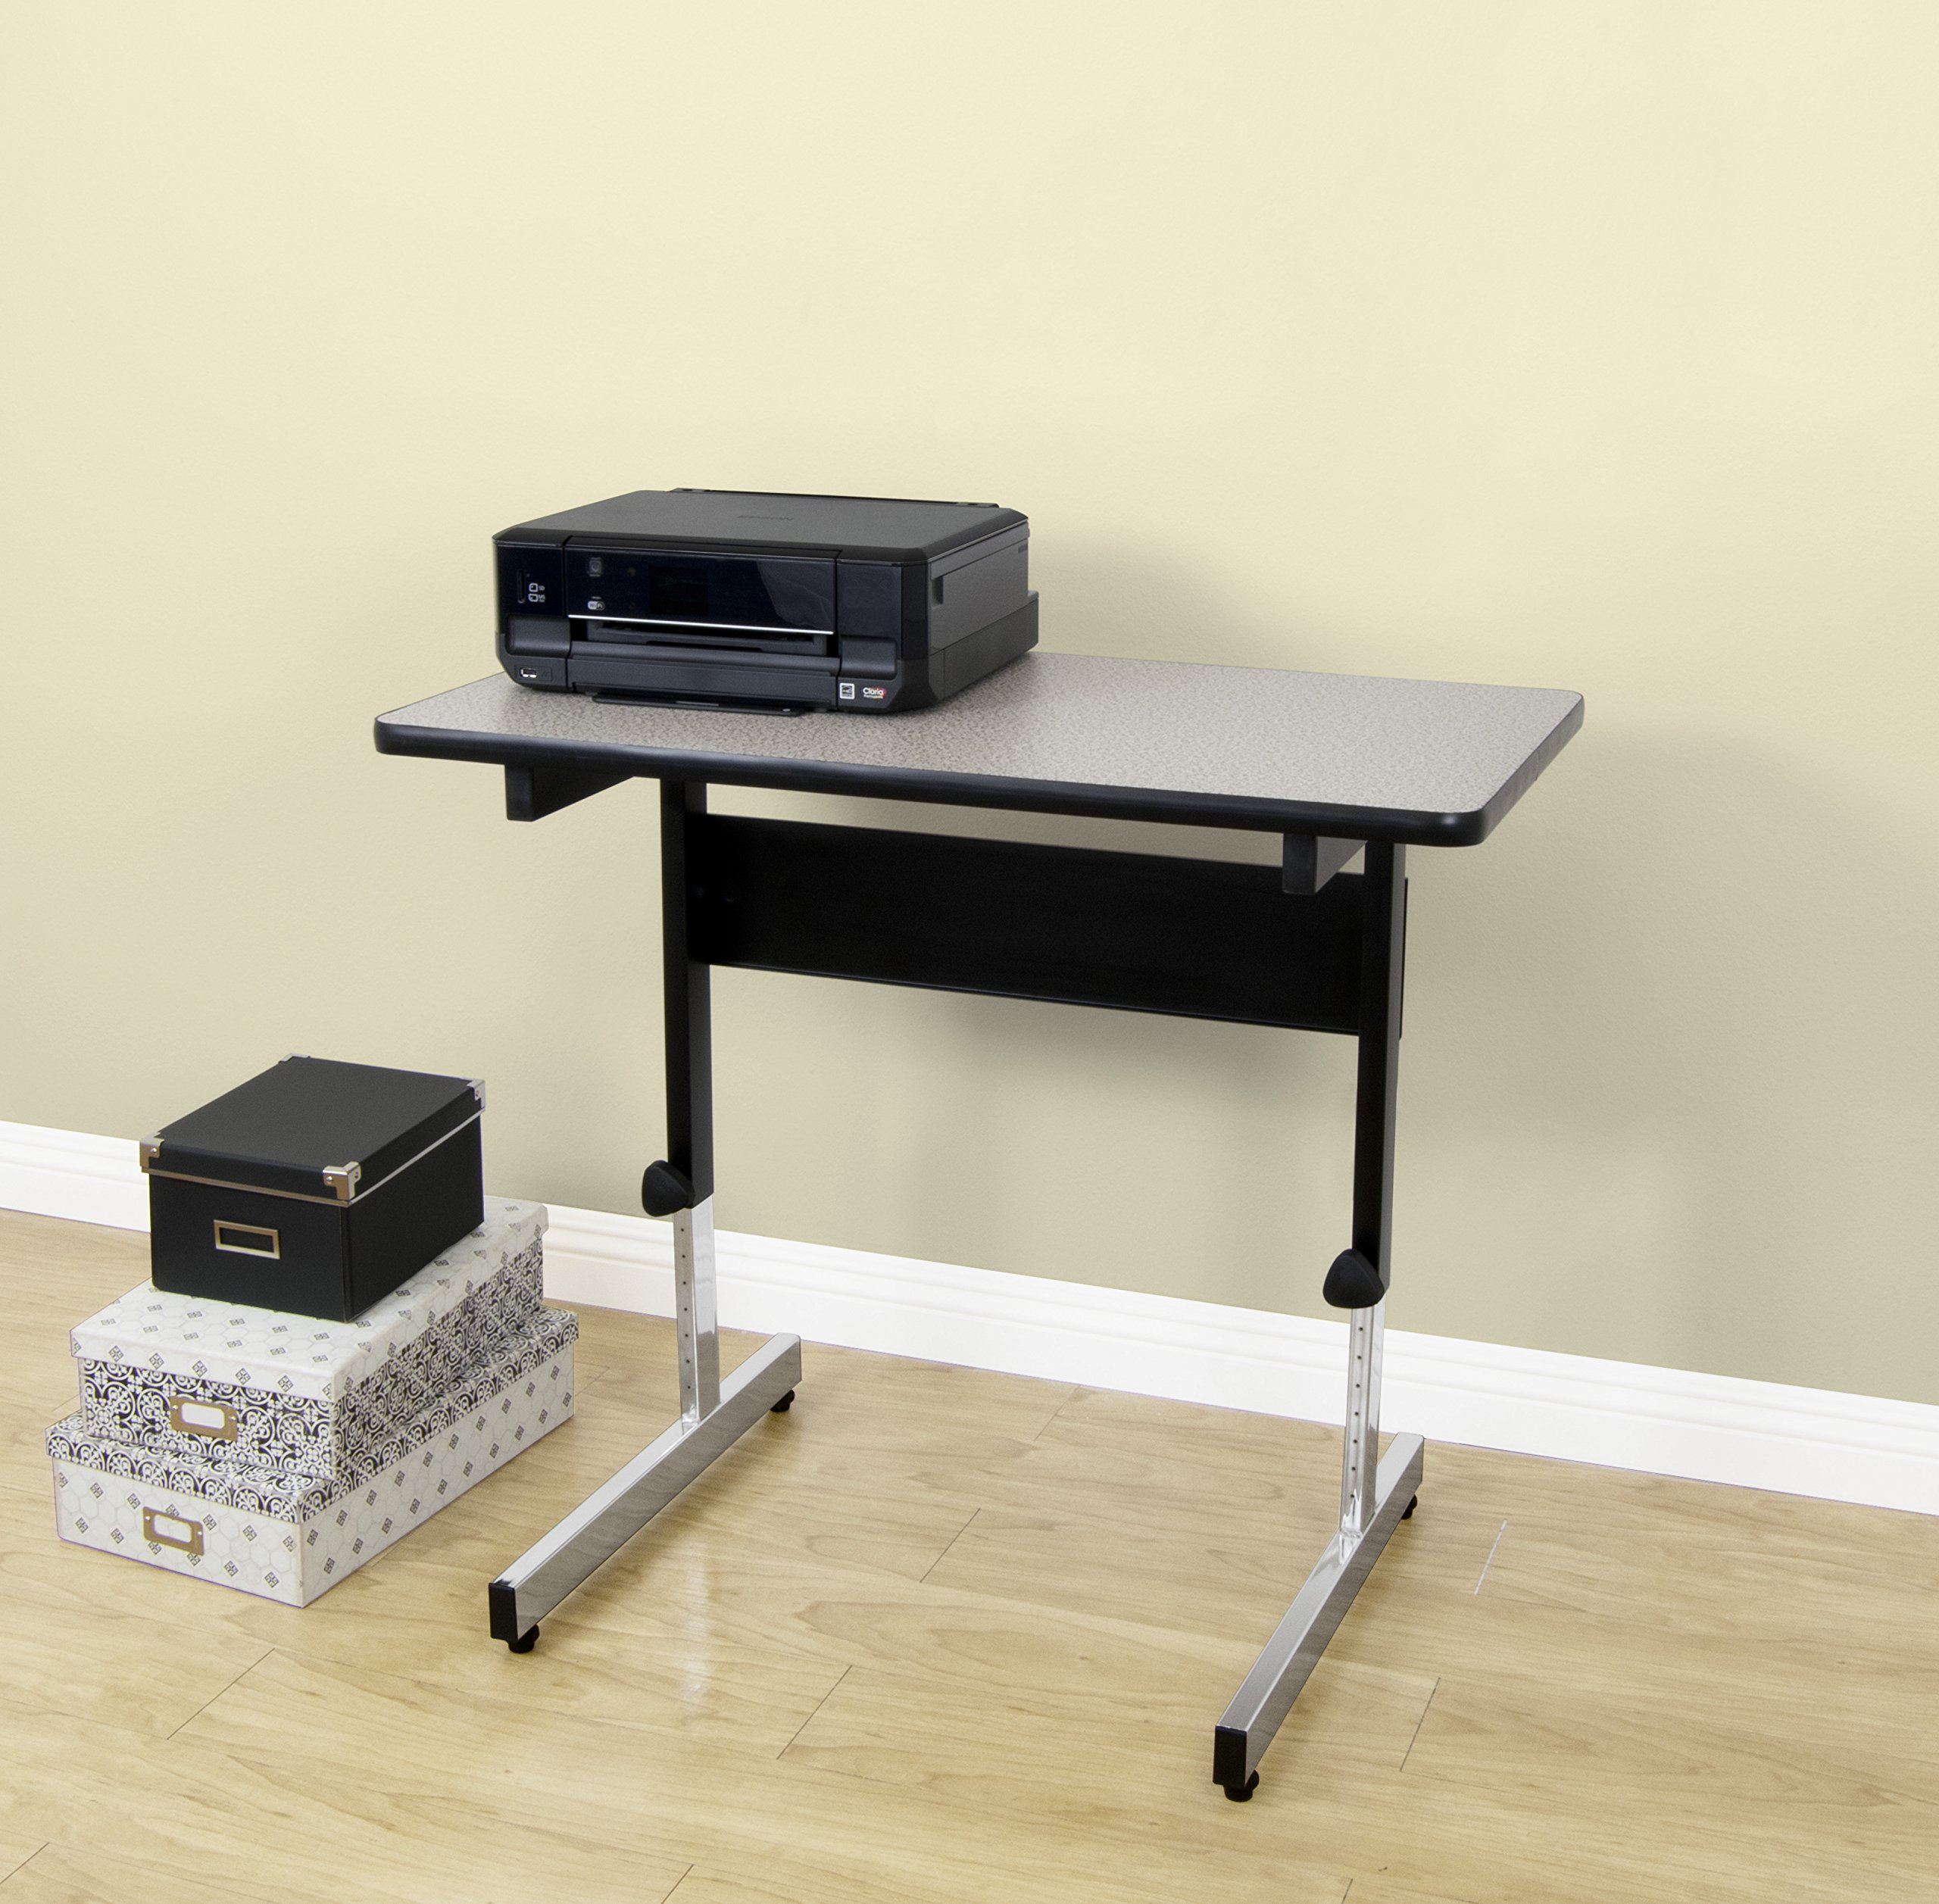 Calico Designs 410381.0 Adapta Table, 36'', Black/Spatter Gray